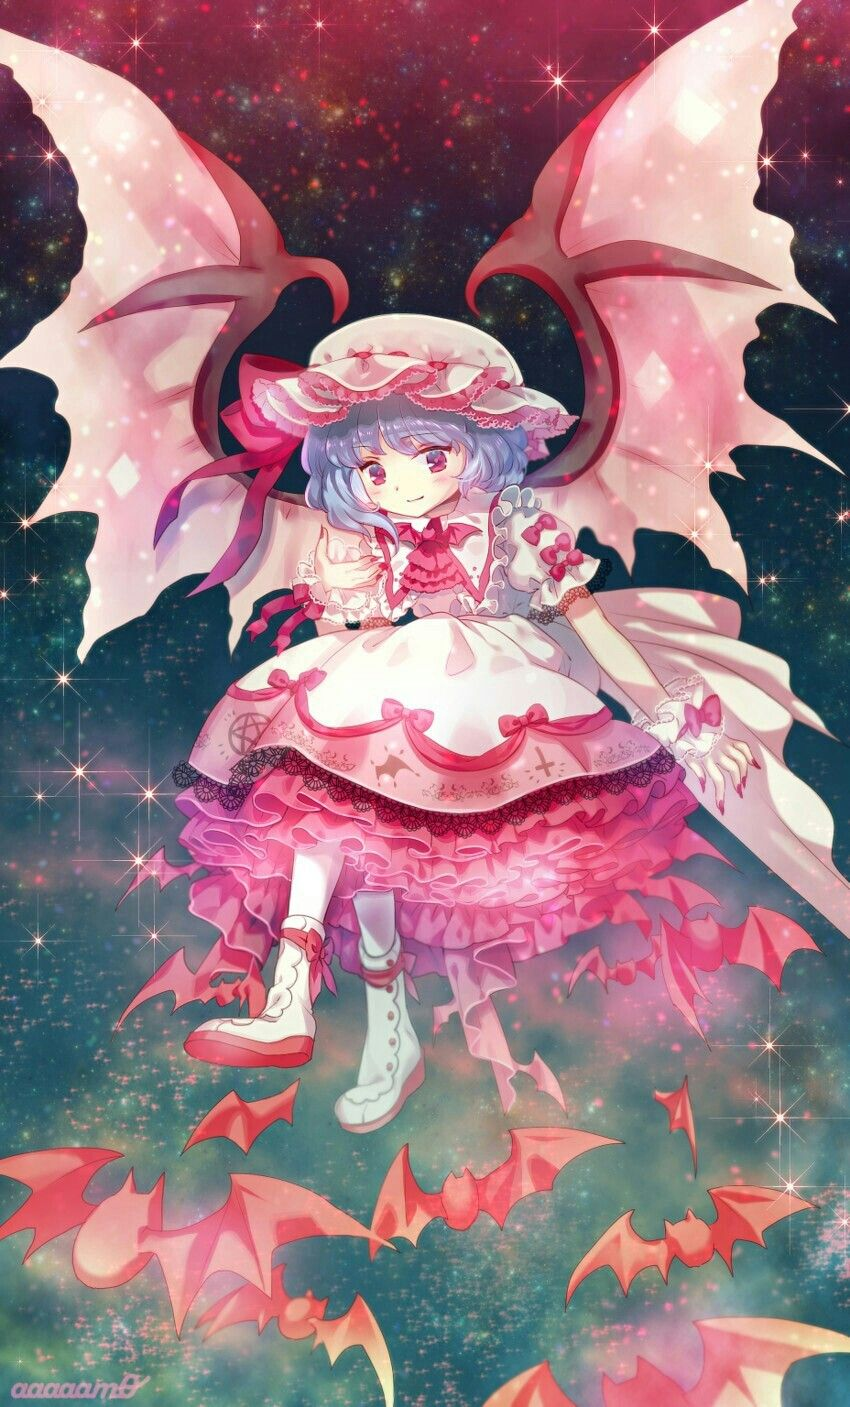 touhou 東方 壁紙 イラスト 東方 キャラ